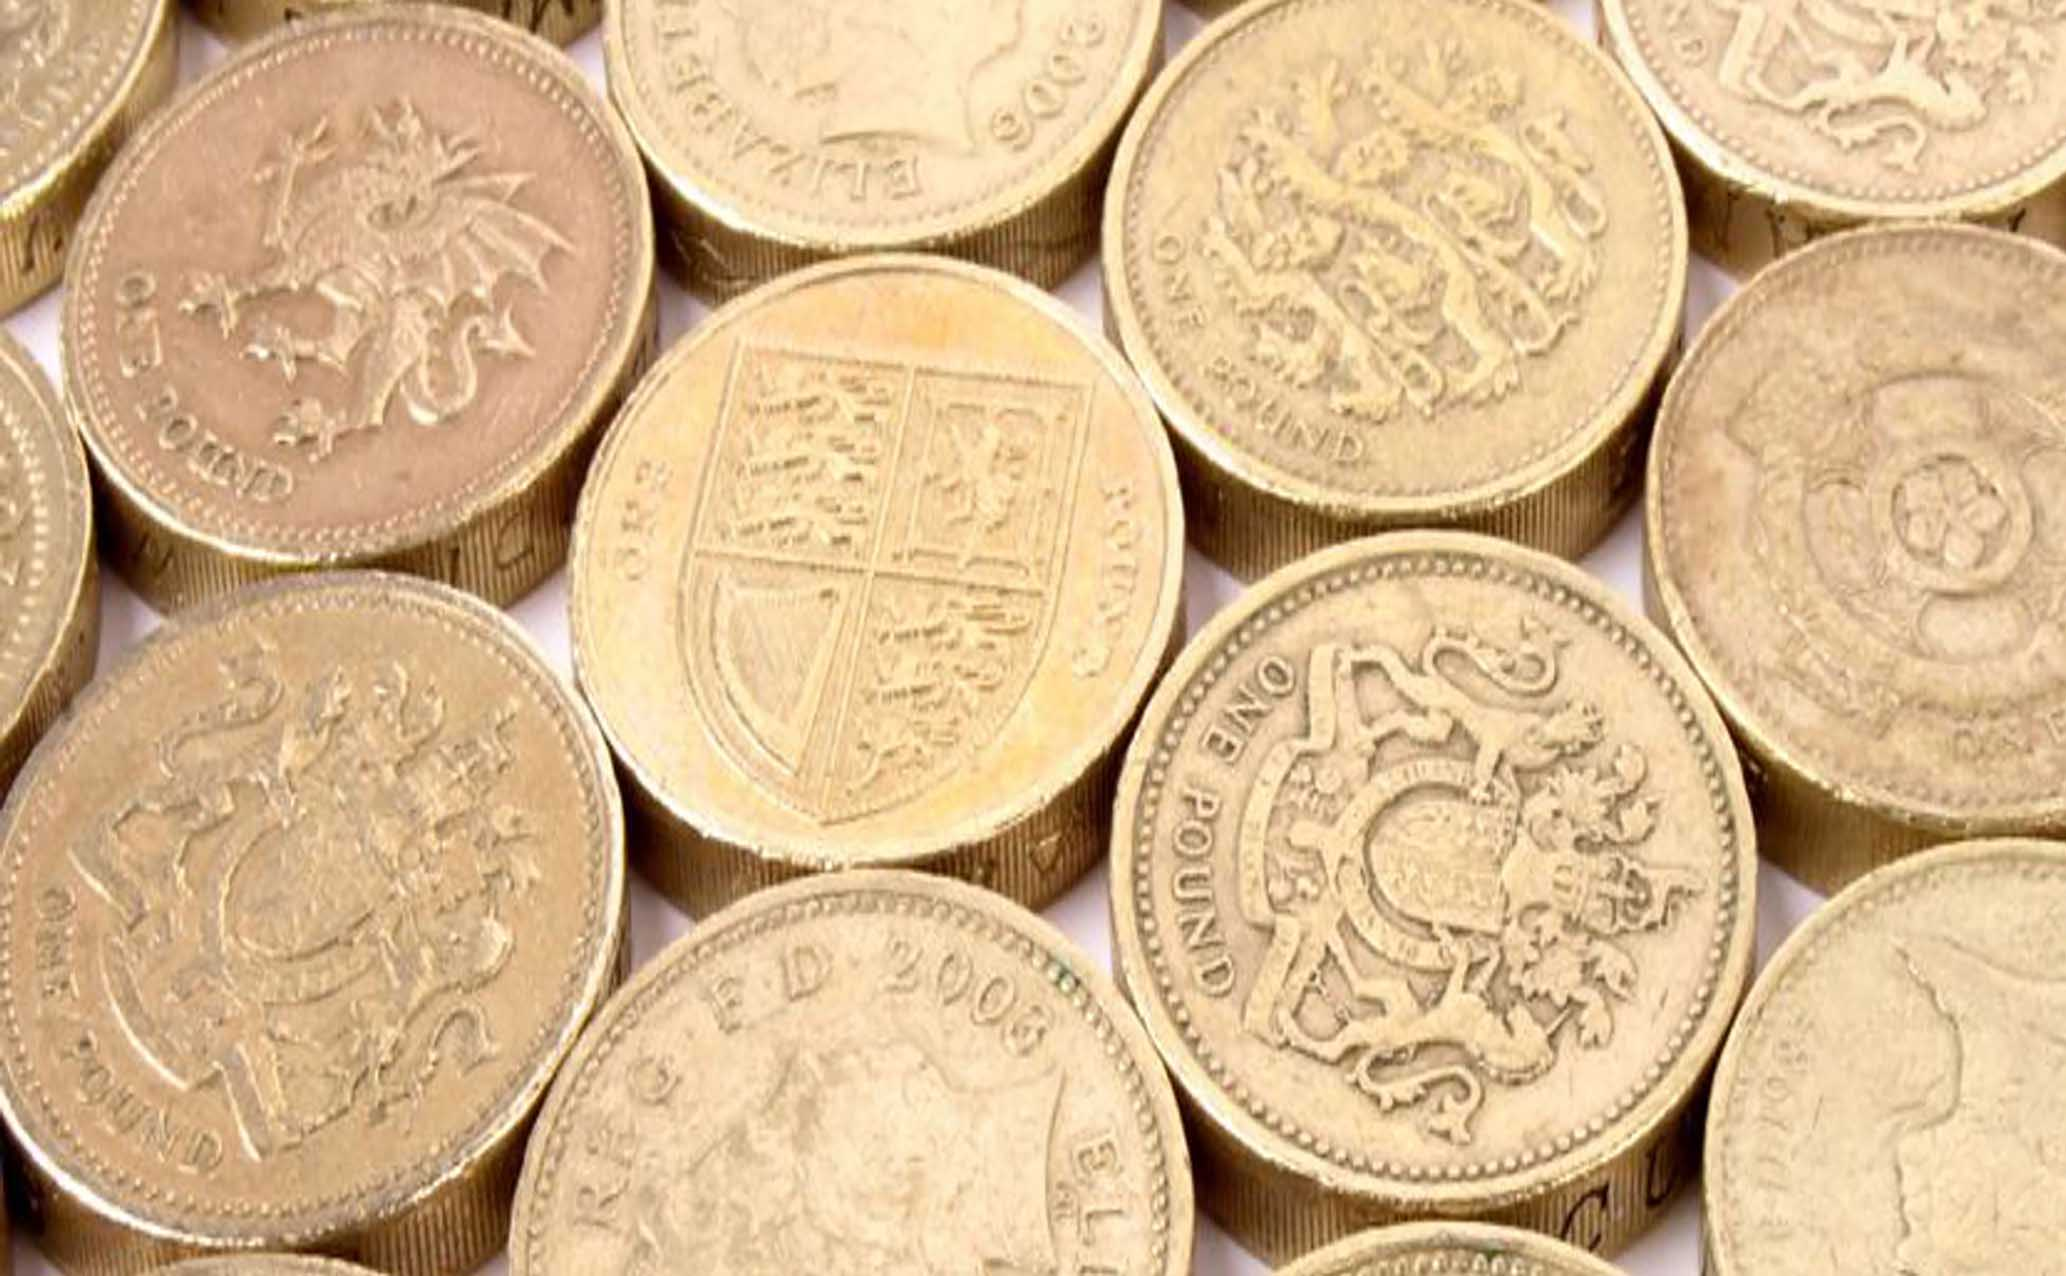 Collection of pound coins